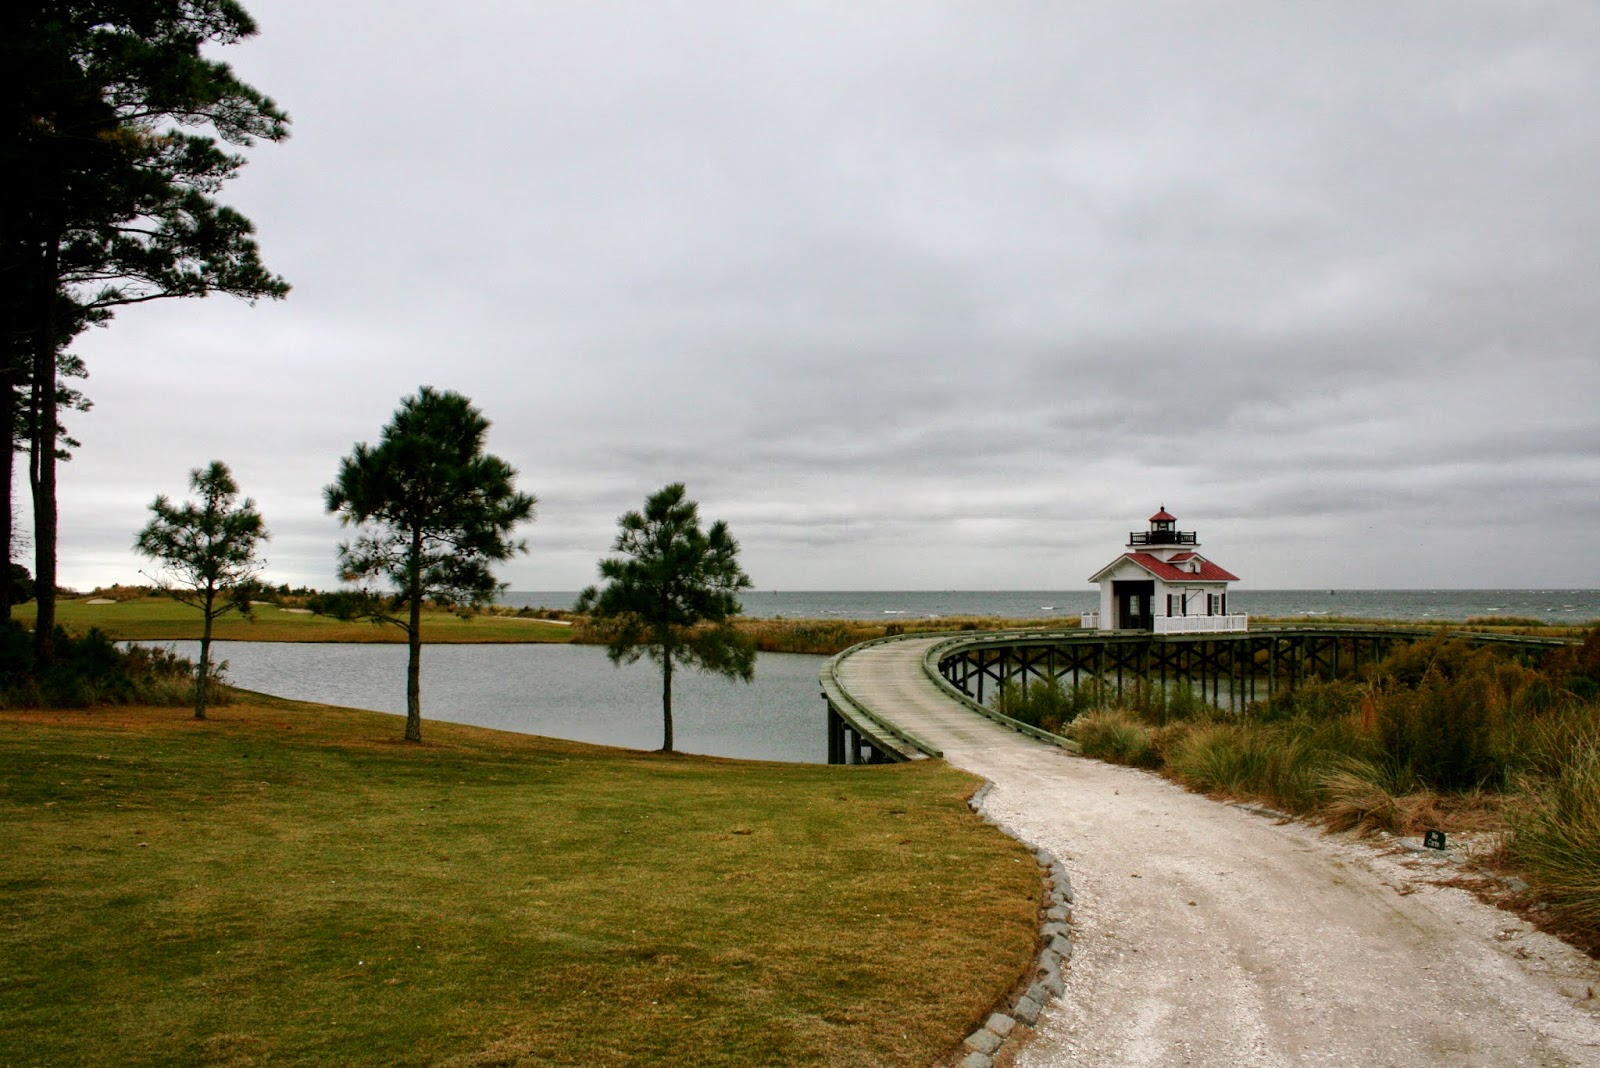 Bay Creek Golf Course - Cape Charles, VA - Blog With The Browns